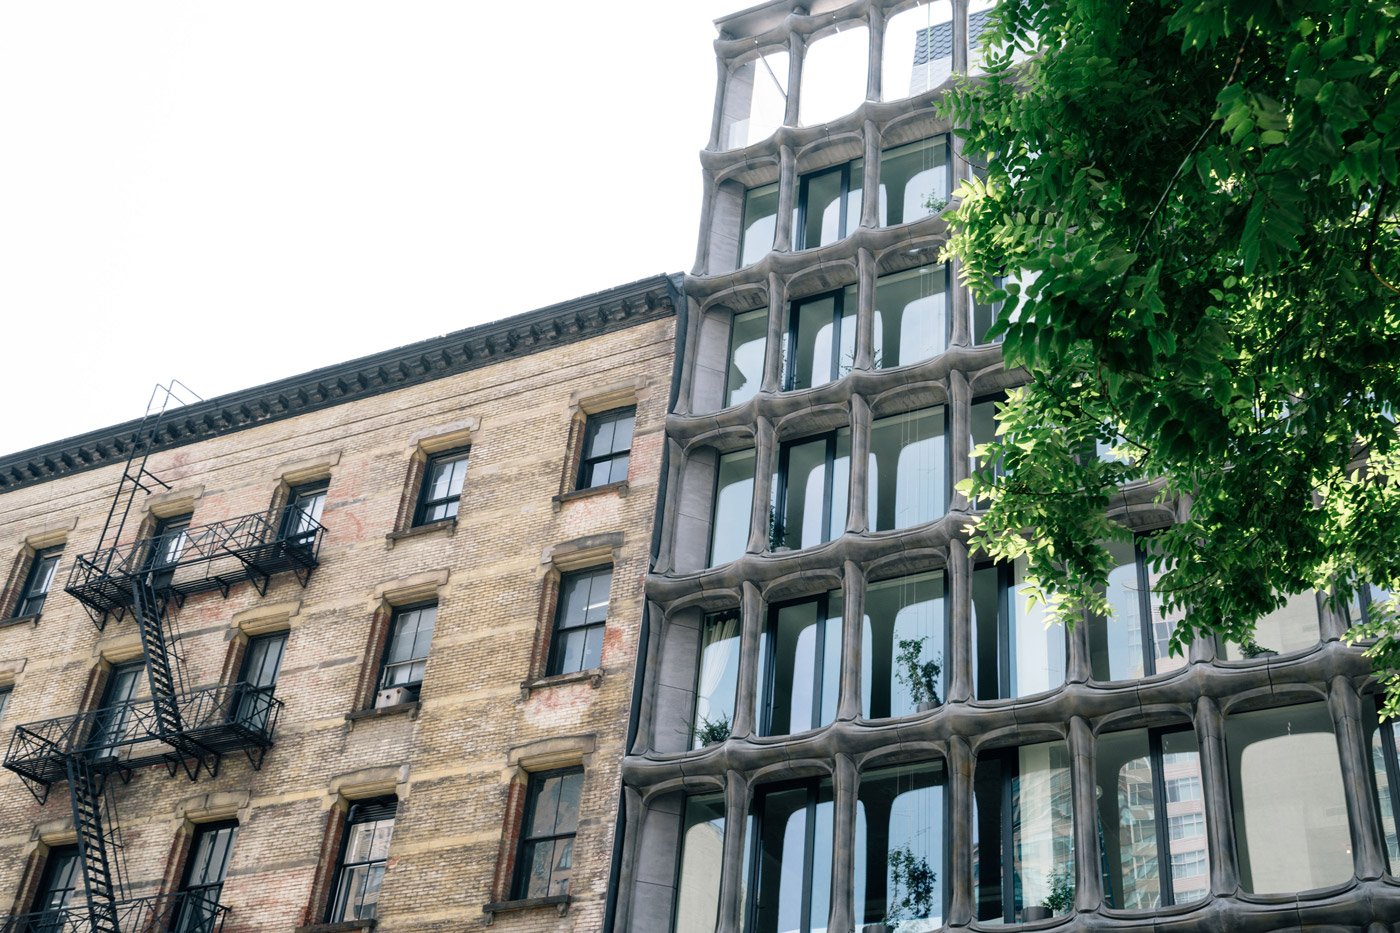 Apartments for sale in Soho